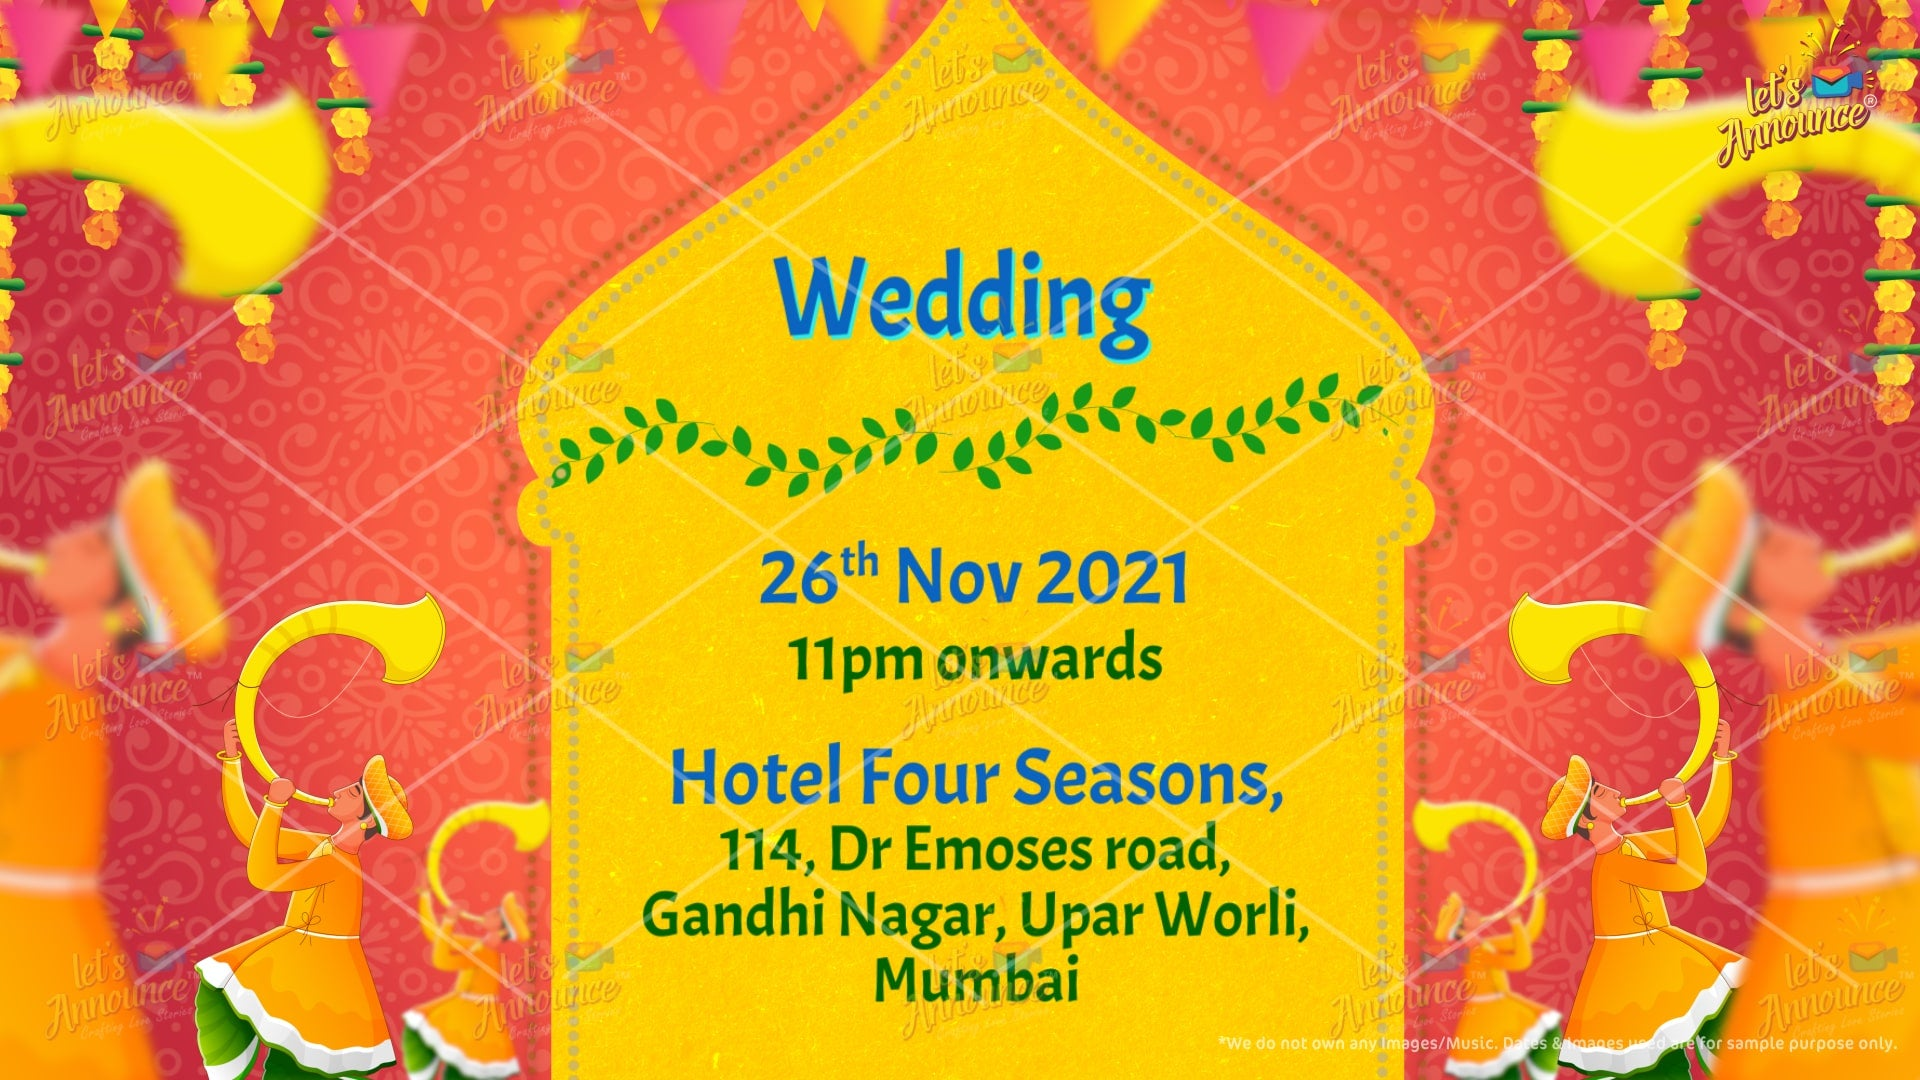 Best Wedding Invitation by www.letsannounc.com